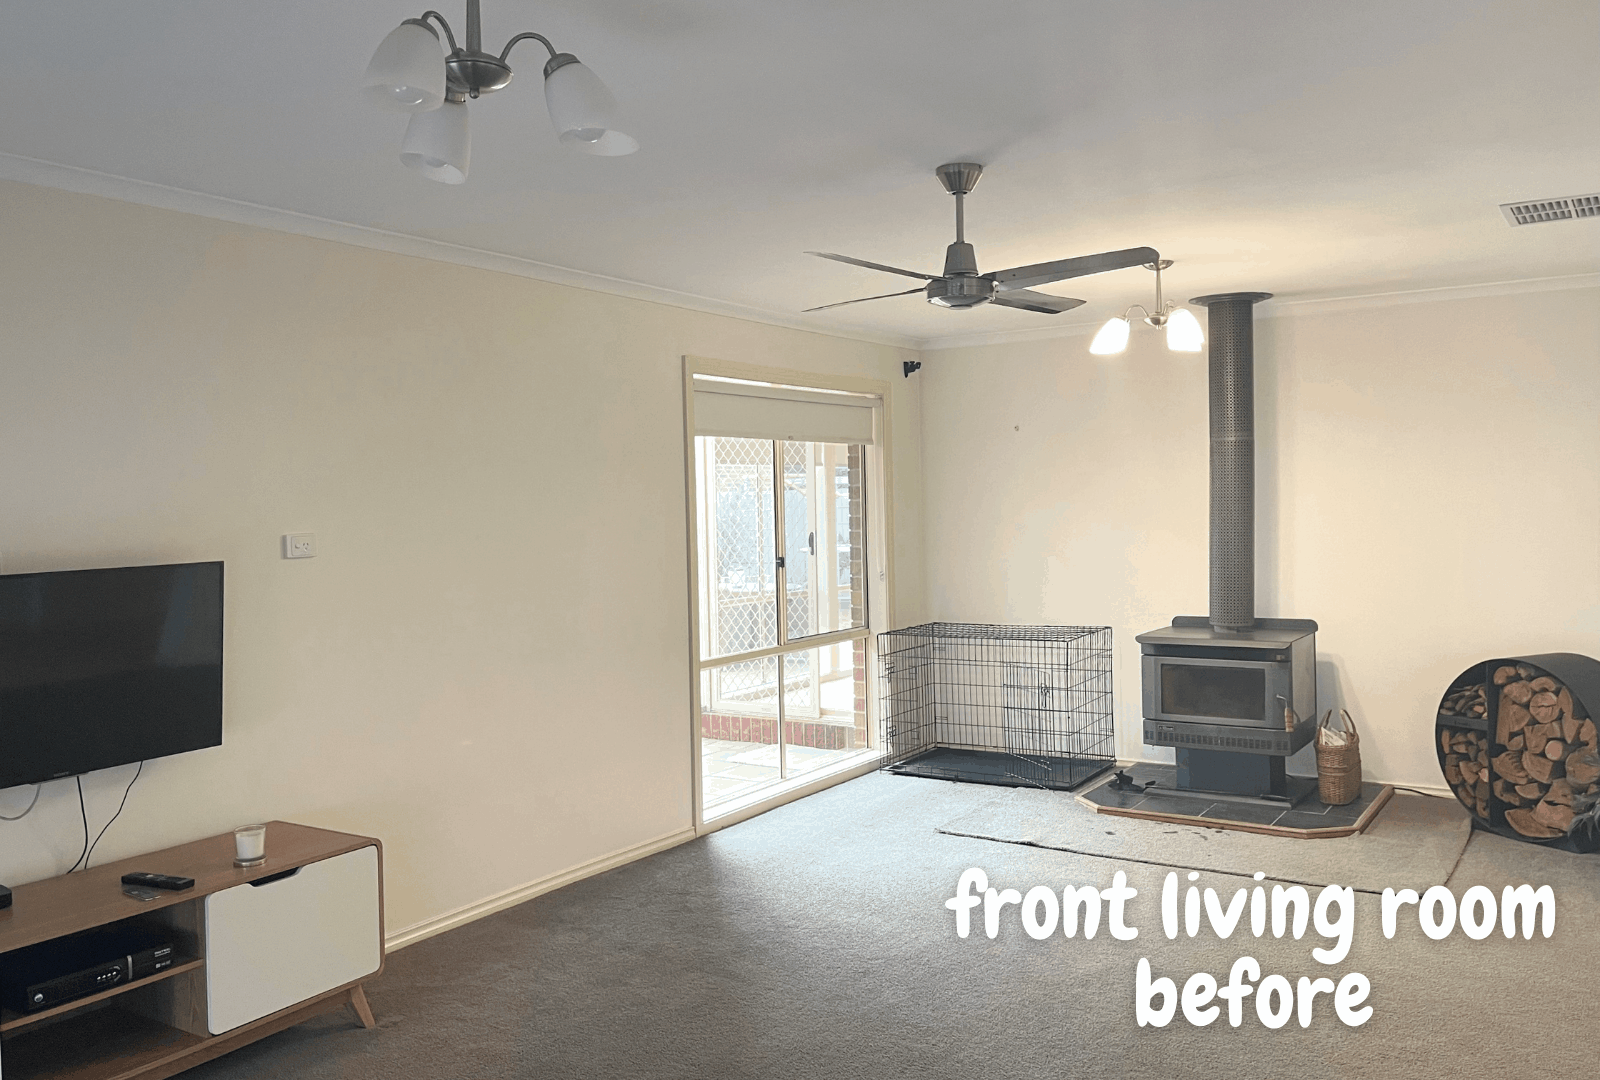 Empty front living room before staging